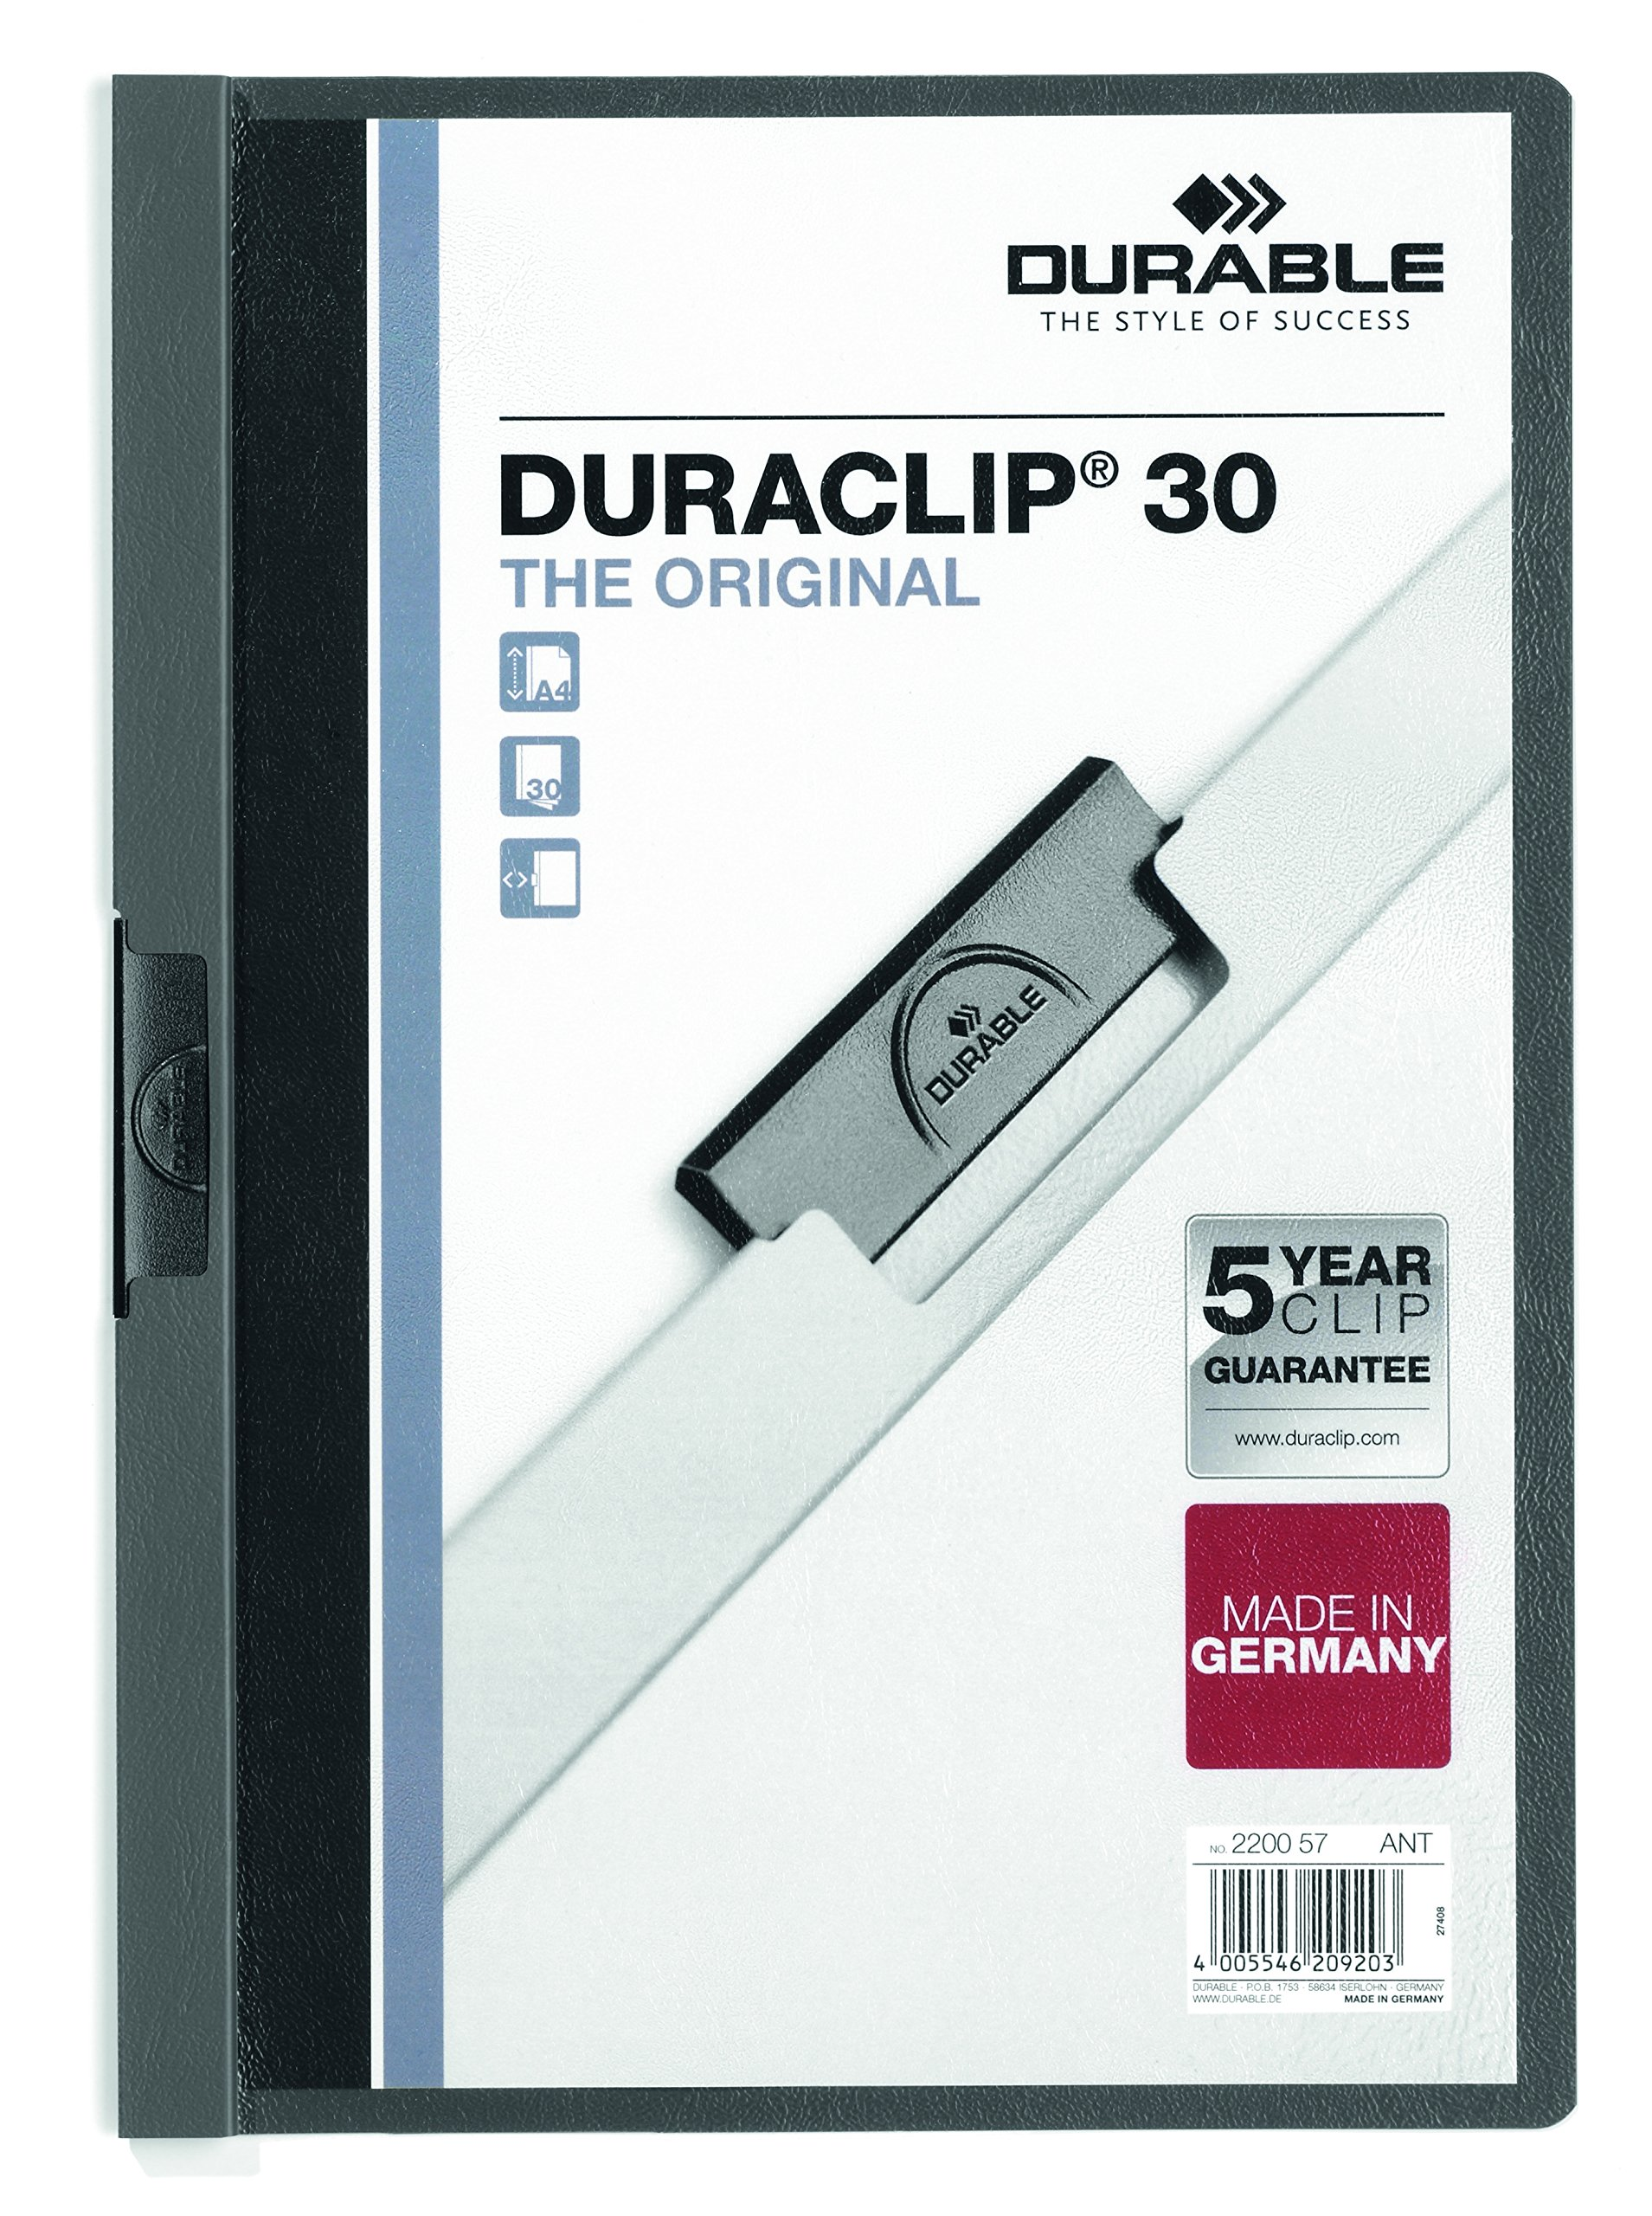 DURABLE Vinyl DURACLIP Report Cover, Letter, Holds up to 30 Pages, Clear/Graphite, 25 per Box (220357)